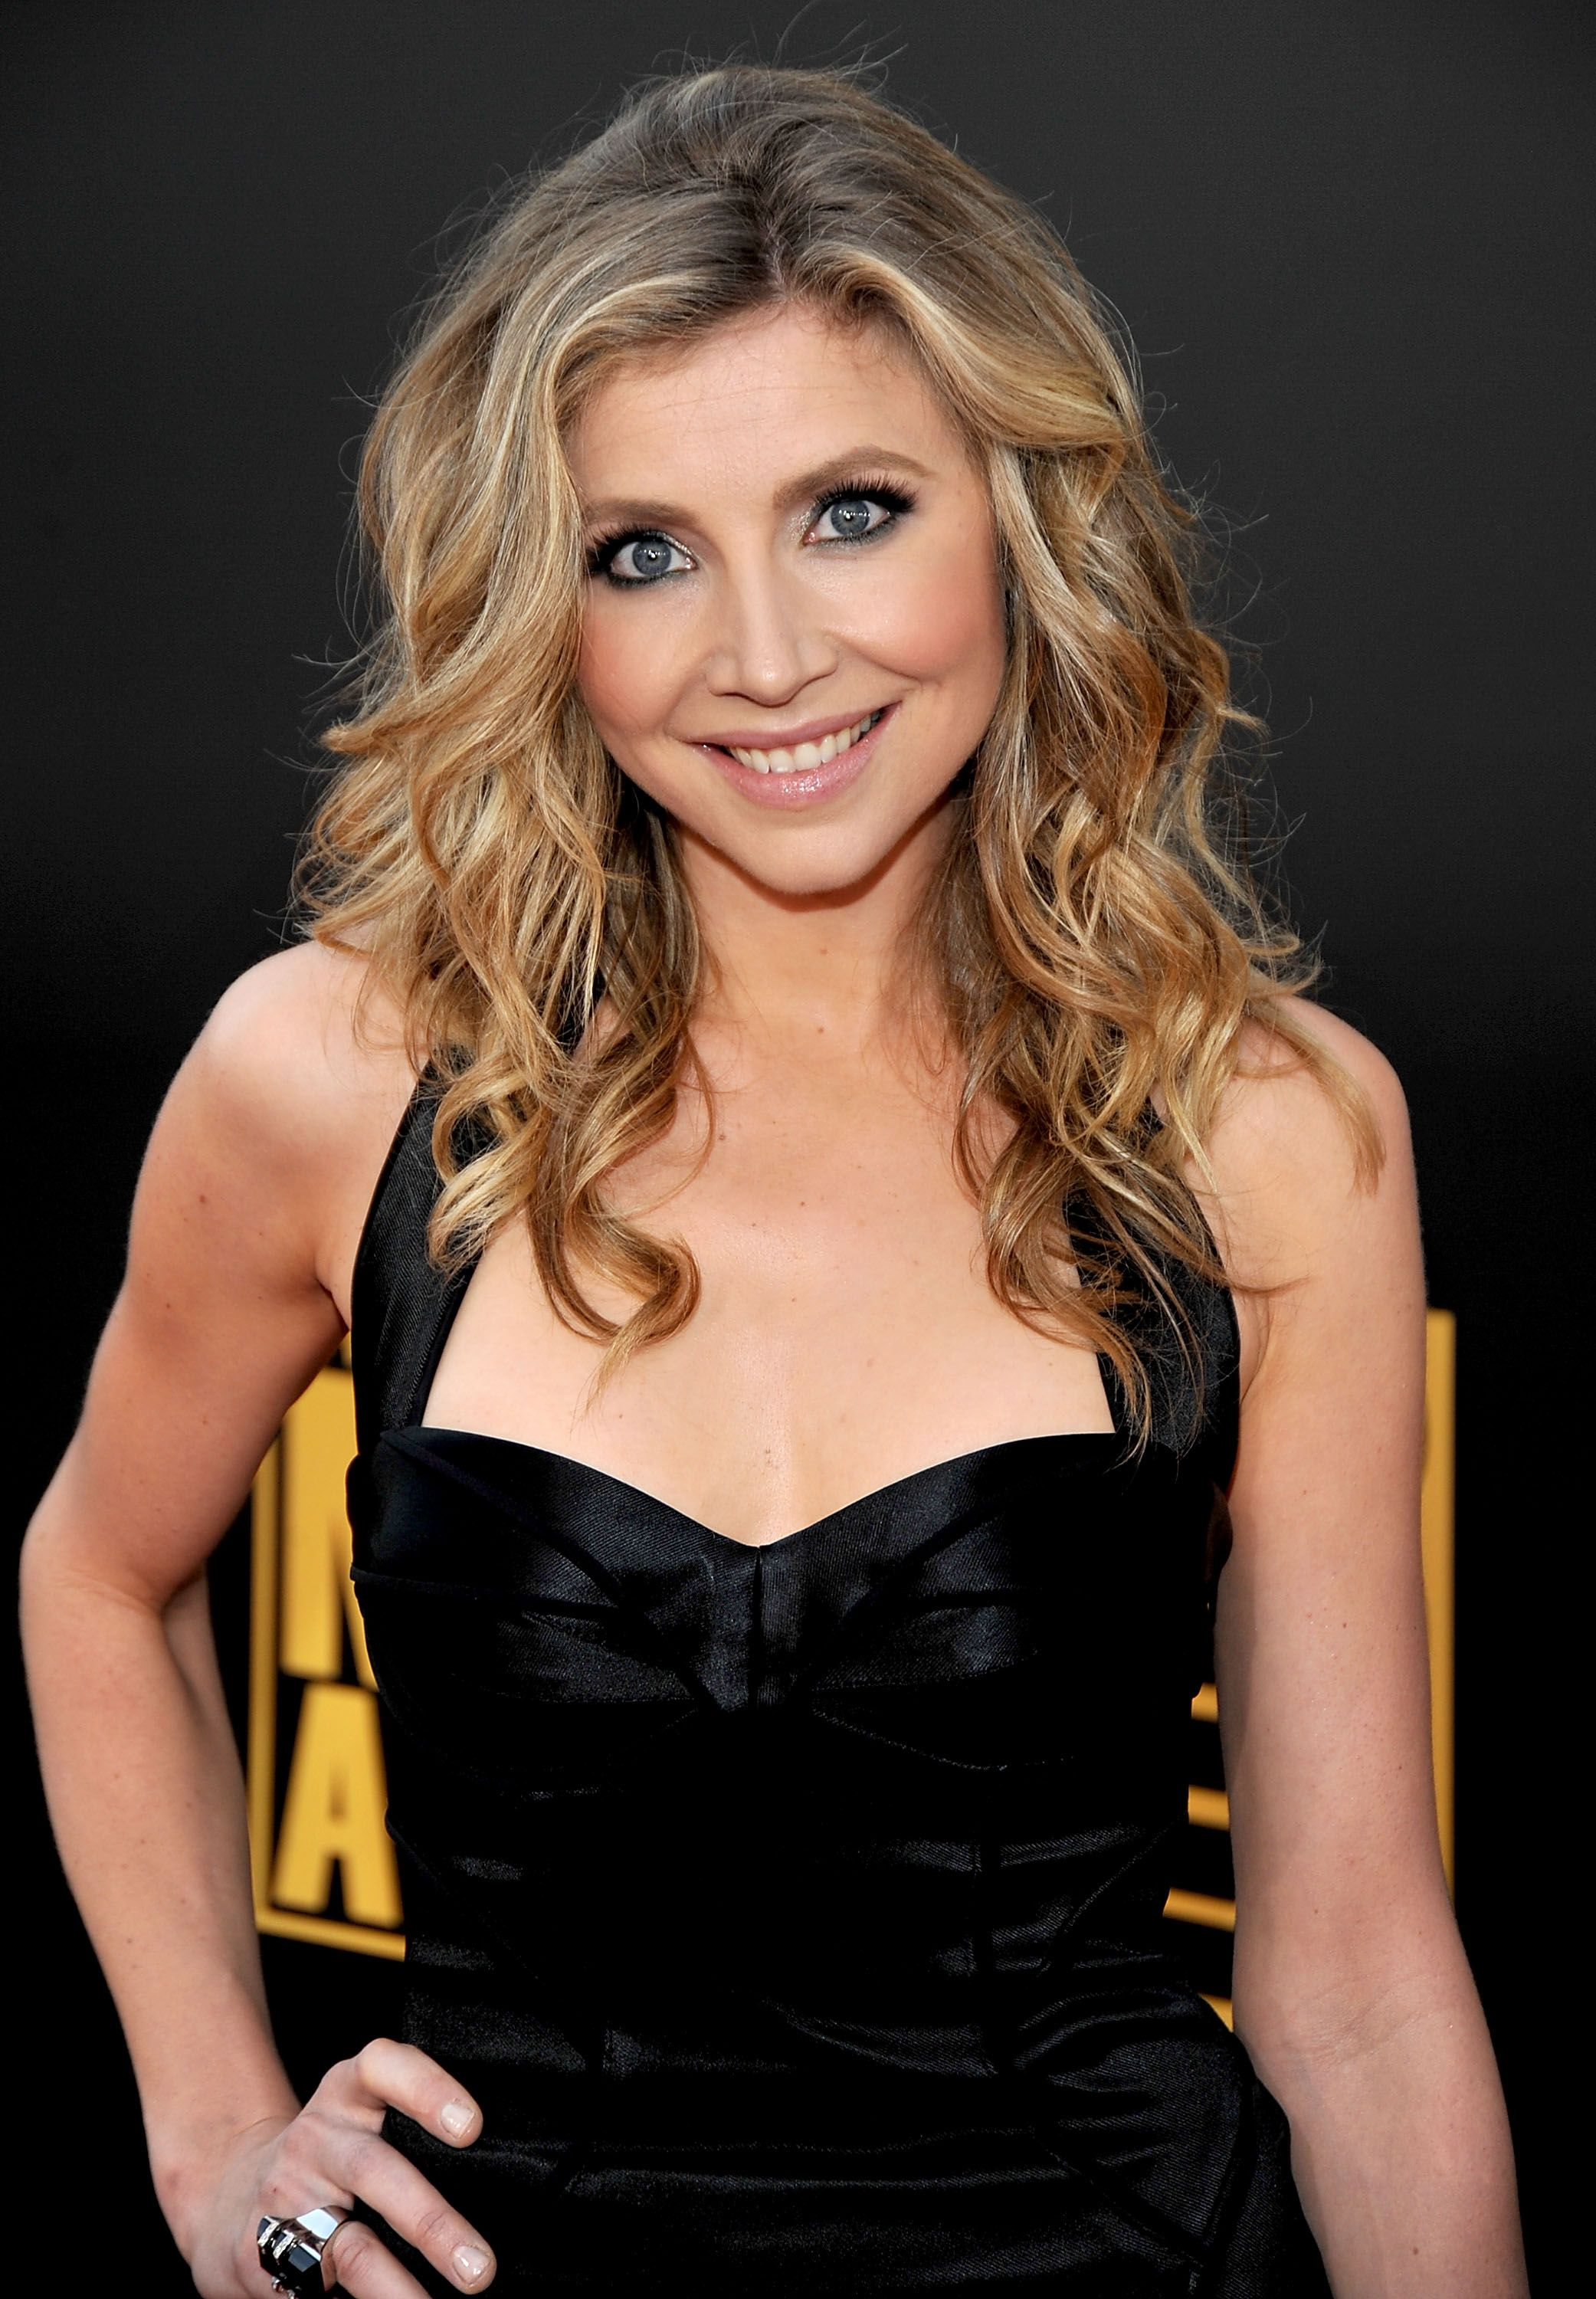 Lisa ann before plastic surgery short hairstyle 2013 - Sarah Chalke Plastic Surgery Gives Her Face Looks All The More New Shinier And Tighter Simply With A Slight Make Up Touch Not Just Botox Infusion Most